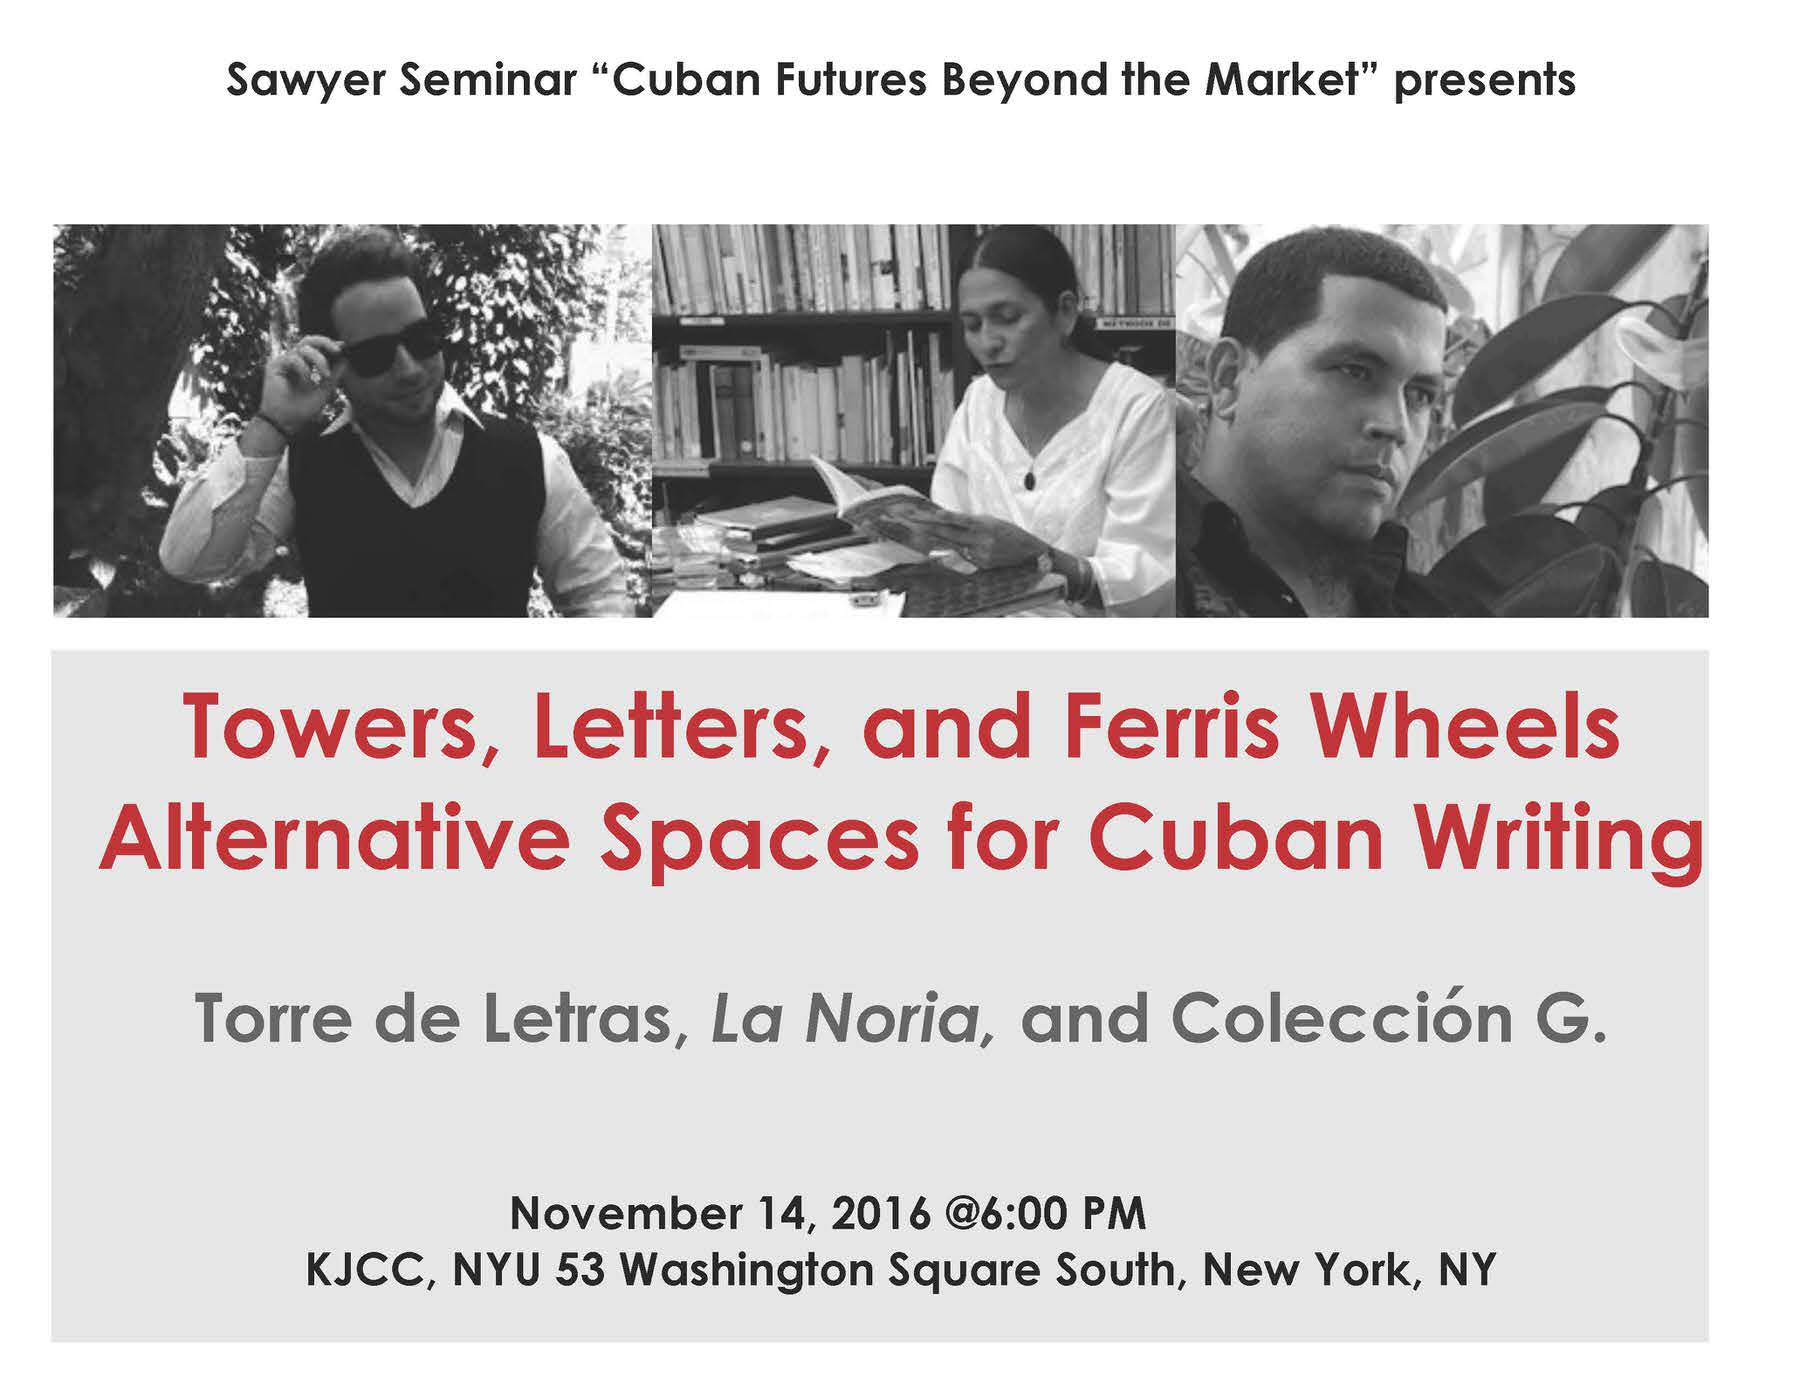 image from Alternative Spaces of Cuban Cultural Life: Torre de Letras, La Noria, and Colección G. November 14, 2016 @6:00 PM